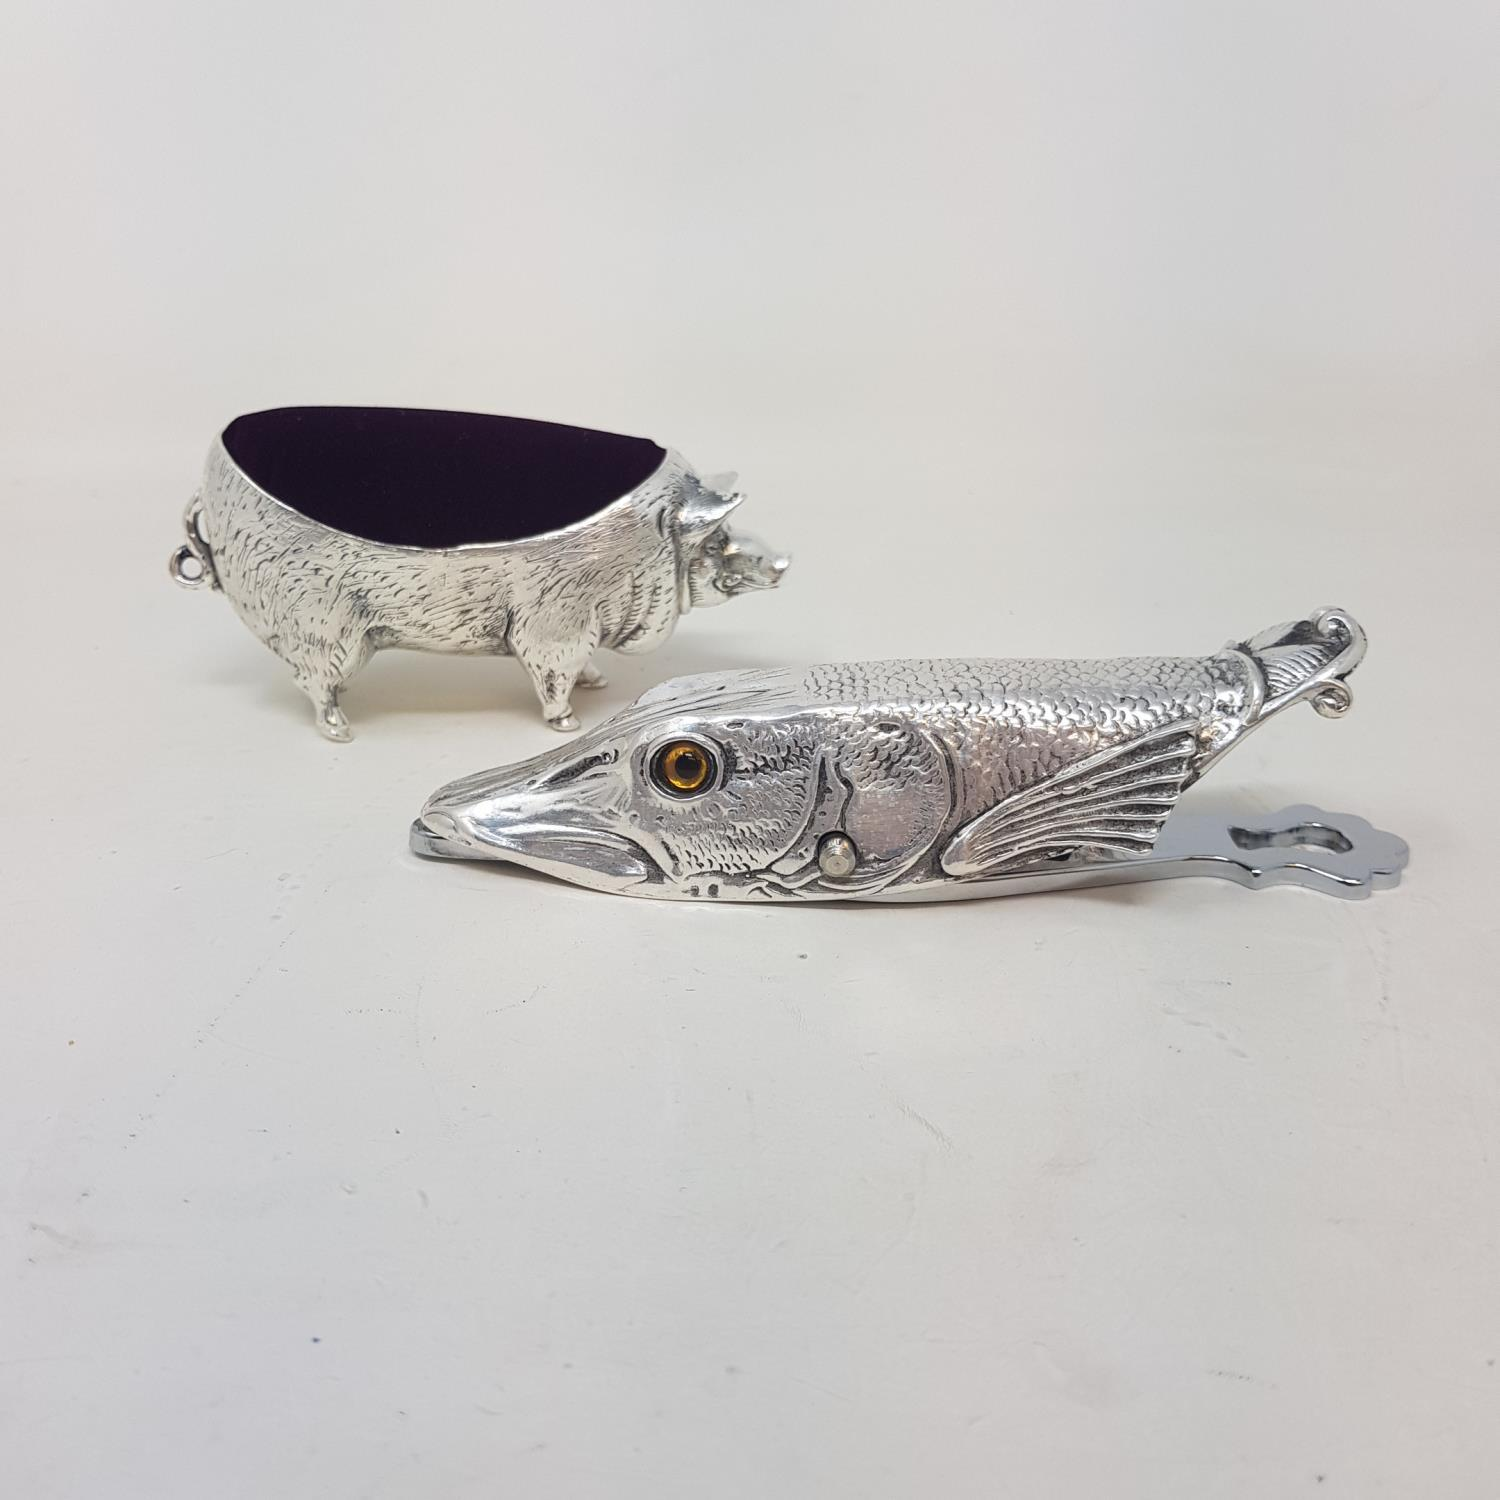 A modern silver plated paperclip in the form of a pike, and a modern pincushion in the form of a pig